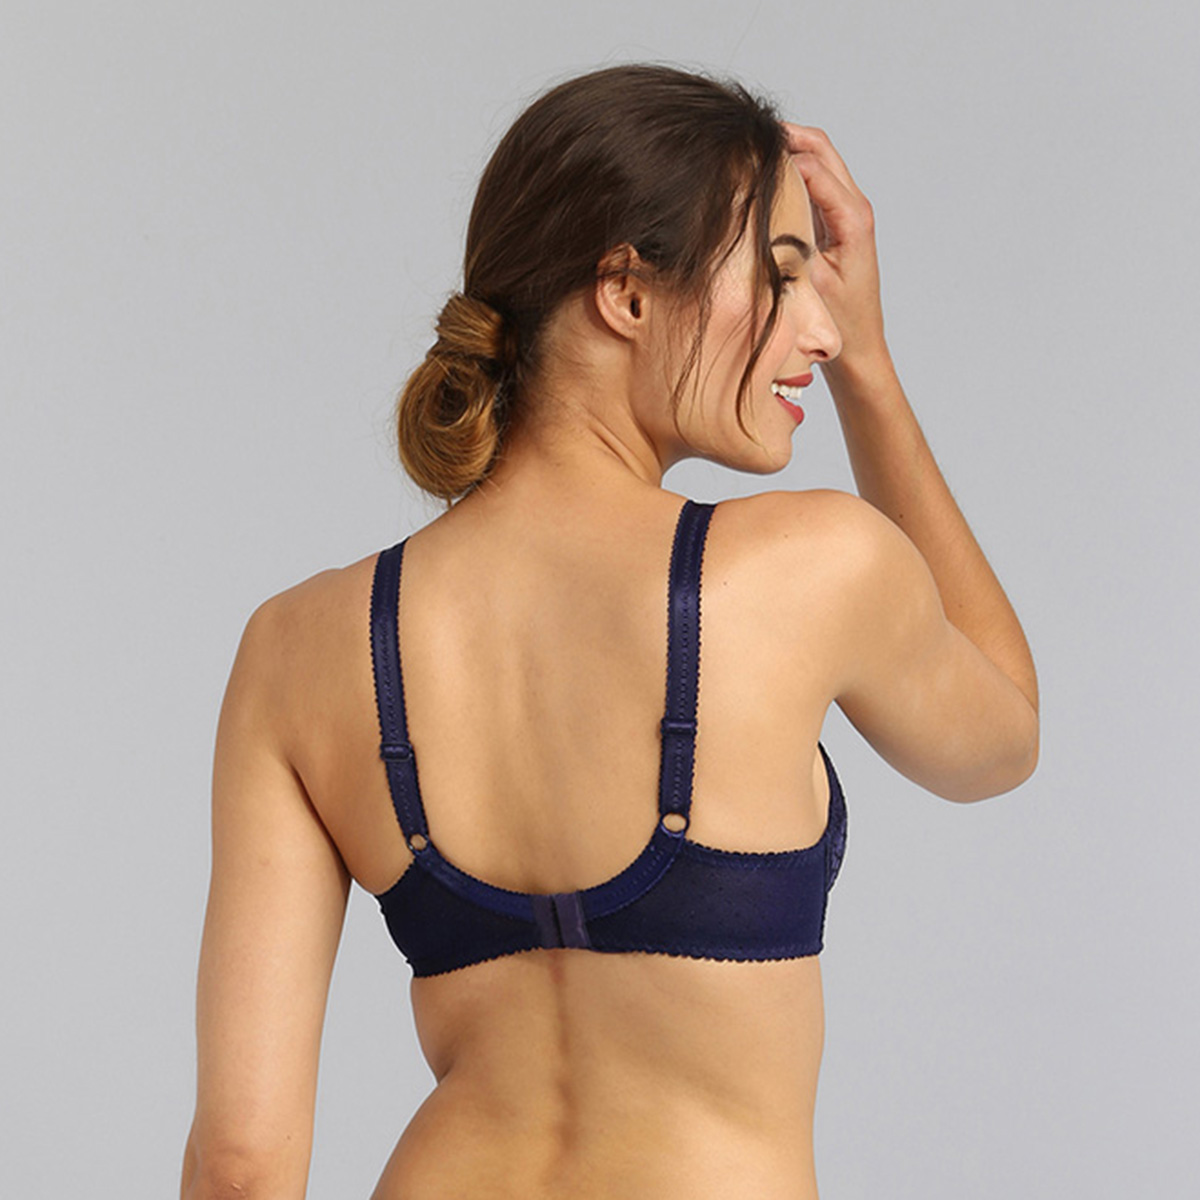 Underwired bra in navy Classic Lace Support, , PLAYTEX